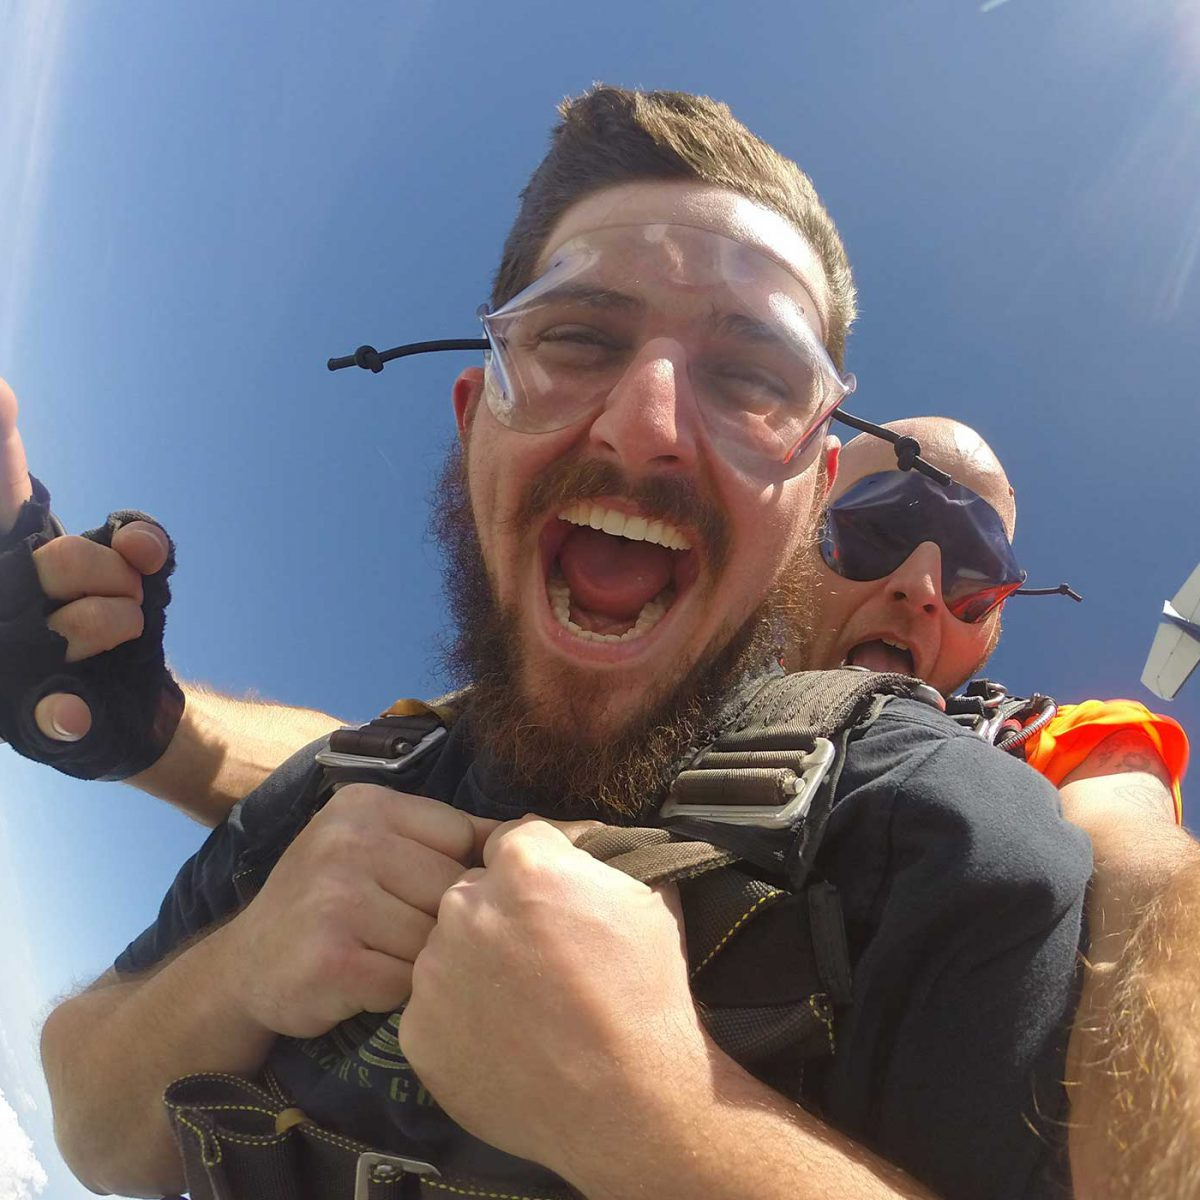 young man smiles in freefall skydiving for the first time in Jacksonville FL